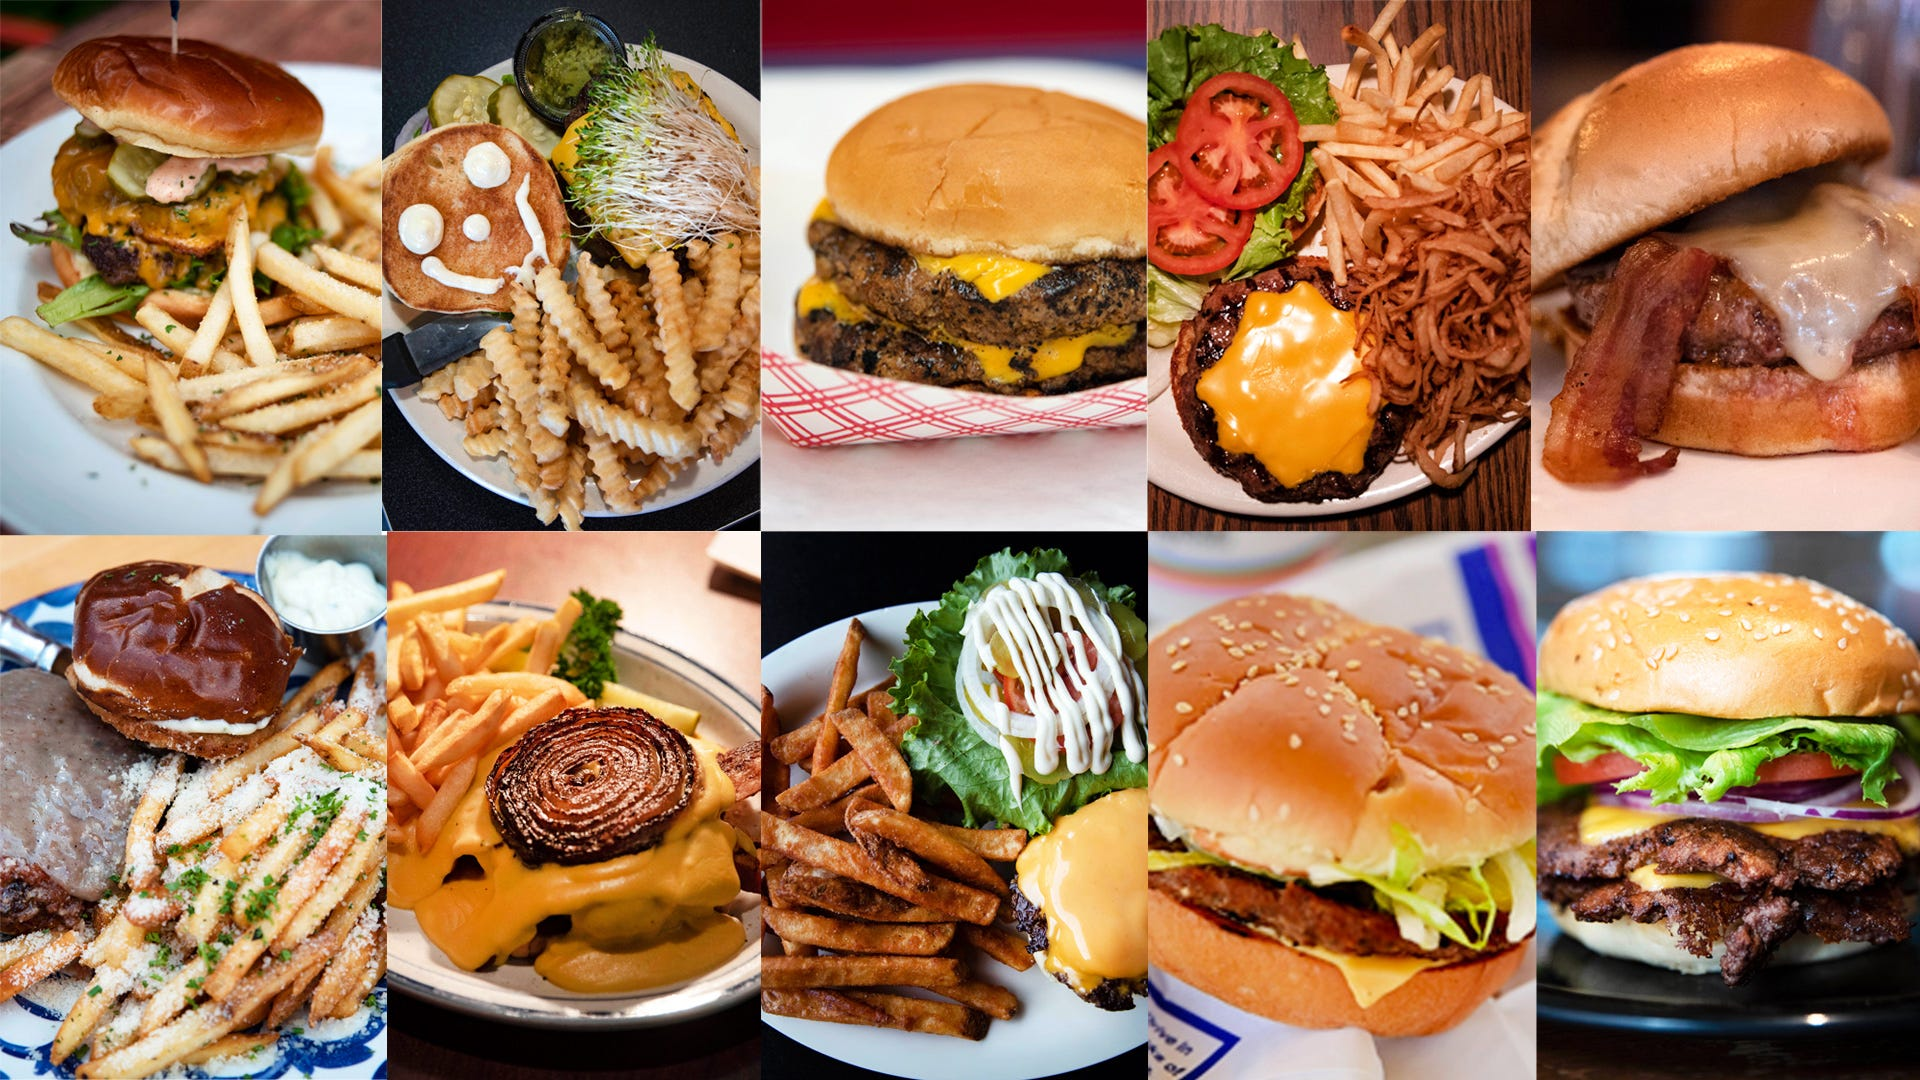 Who S Got The Best Burgers In Des Moines